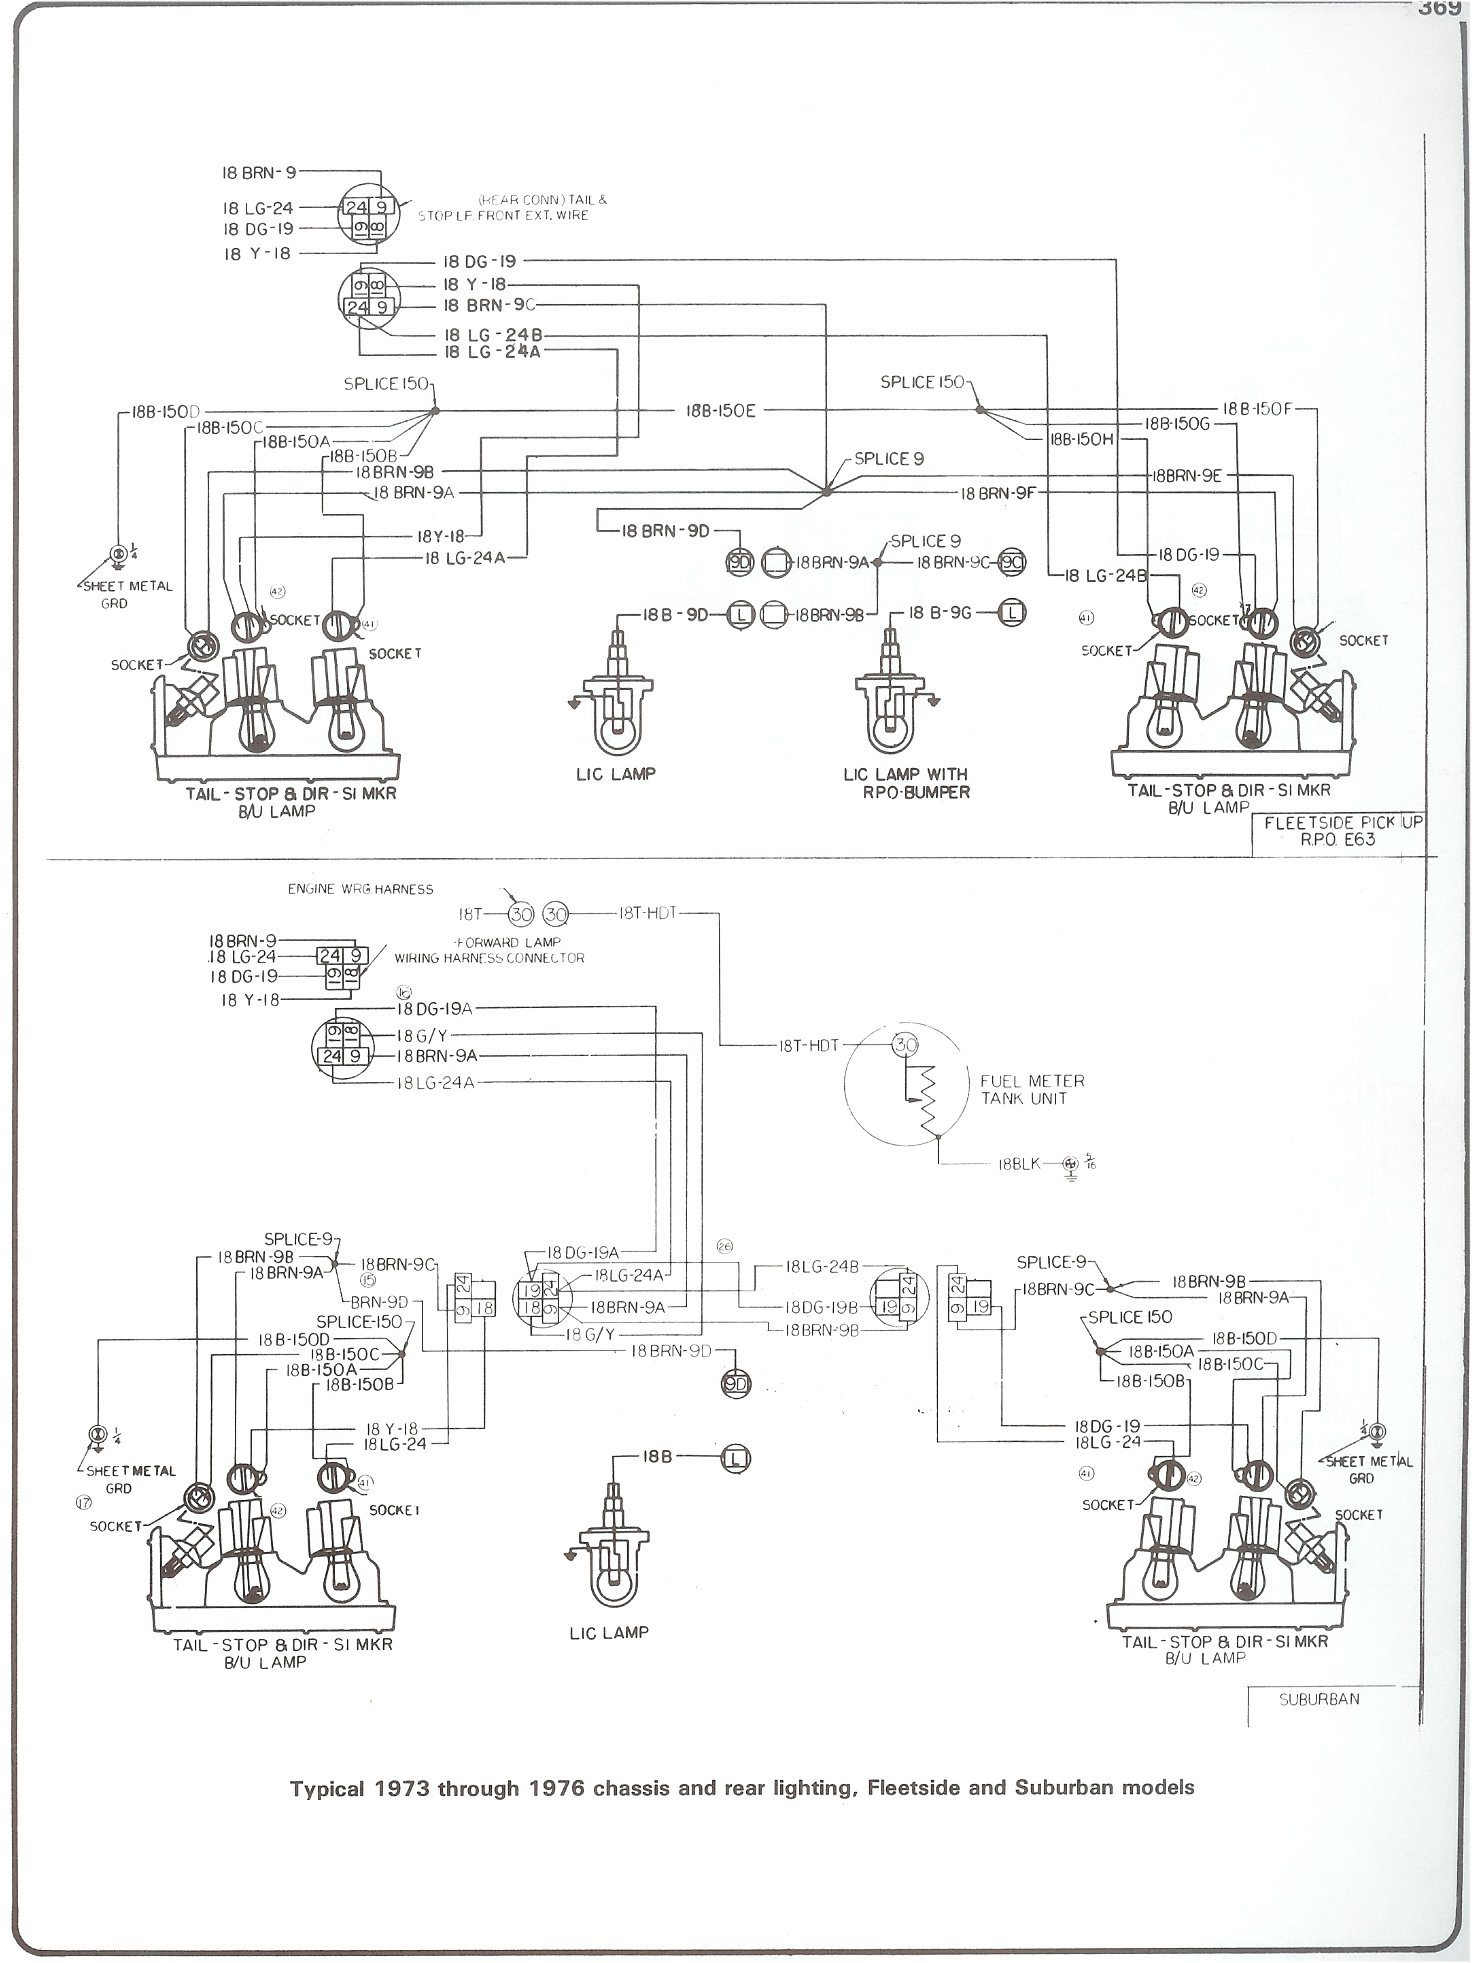 c10 starter wiring diagram printable wiring diagram \u2022complete 73 87 wiring diagrams rh forum 73 87chevytrucks com 1972 chevy c10 starter wiring diagram 1977 c10 heater controller diagram